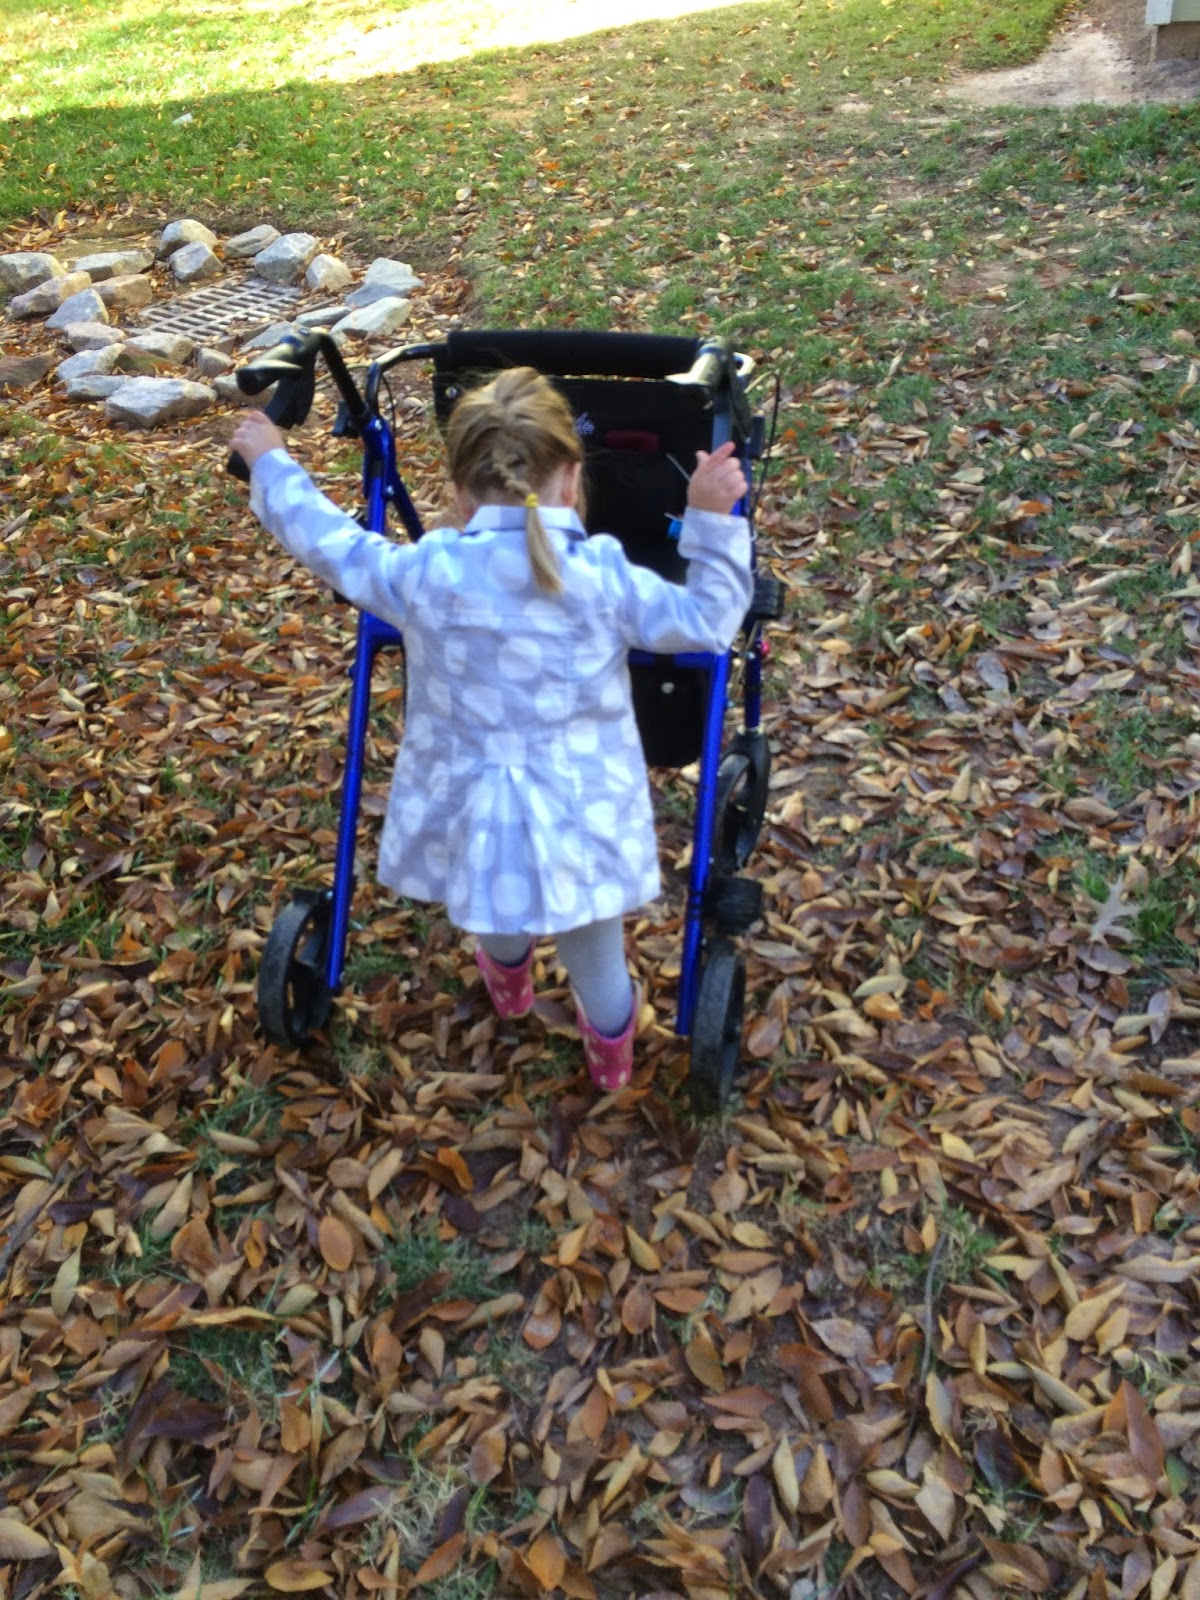 Photograph: A three-year-old girl in a polka dot coat and pink boots pushing a rollator walker through a pile of leaves.